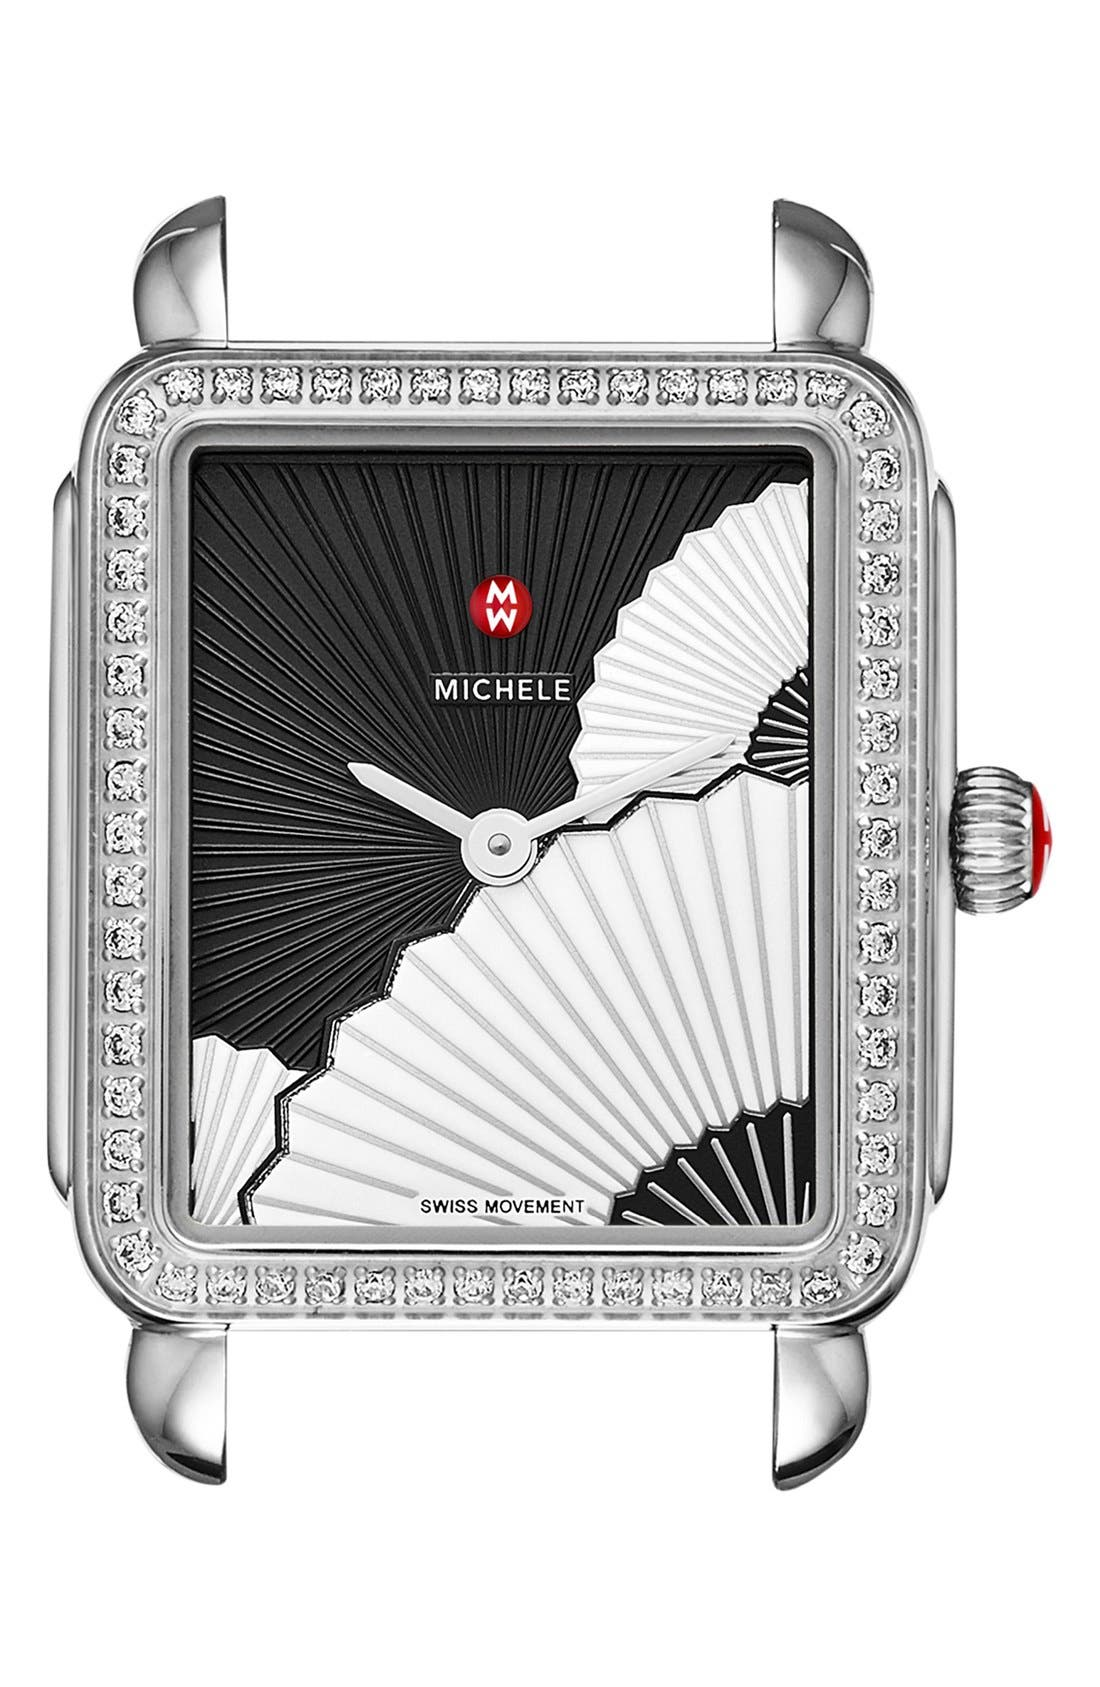 MICHELE Deco II Diamond Dial Watch Case, 26mm x 27 1/2mm